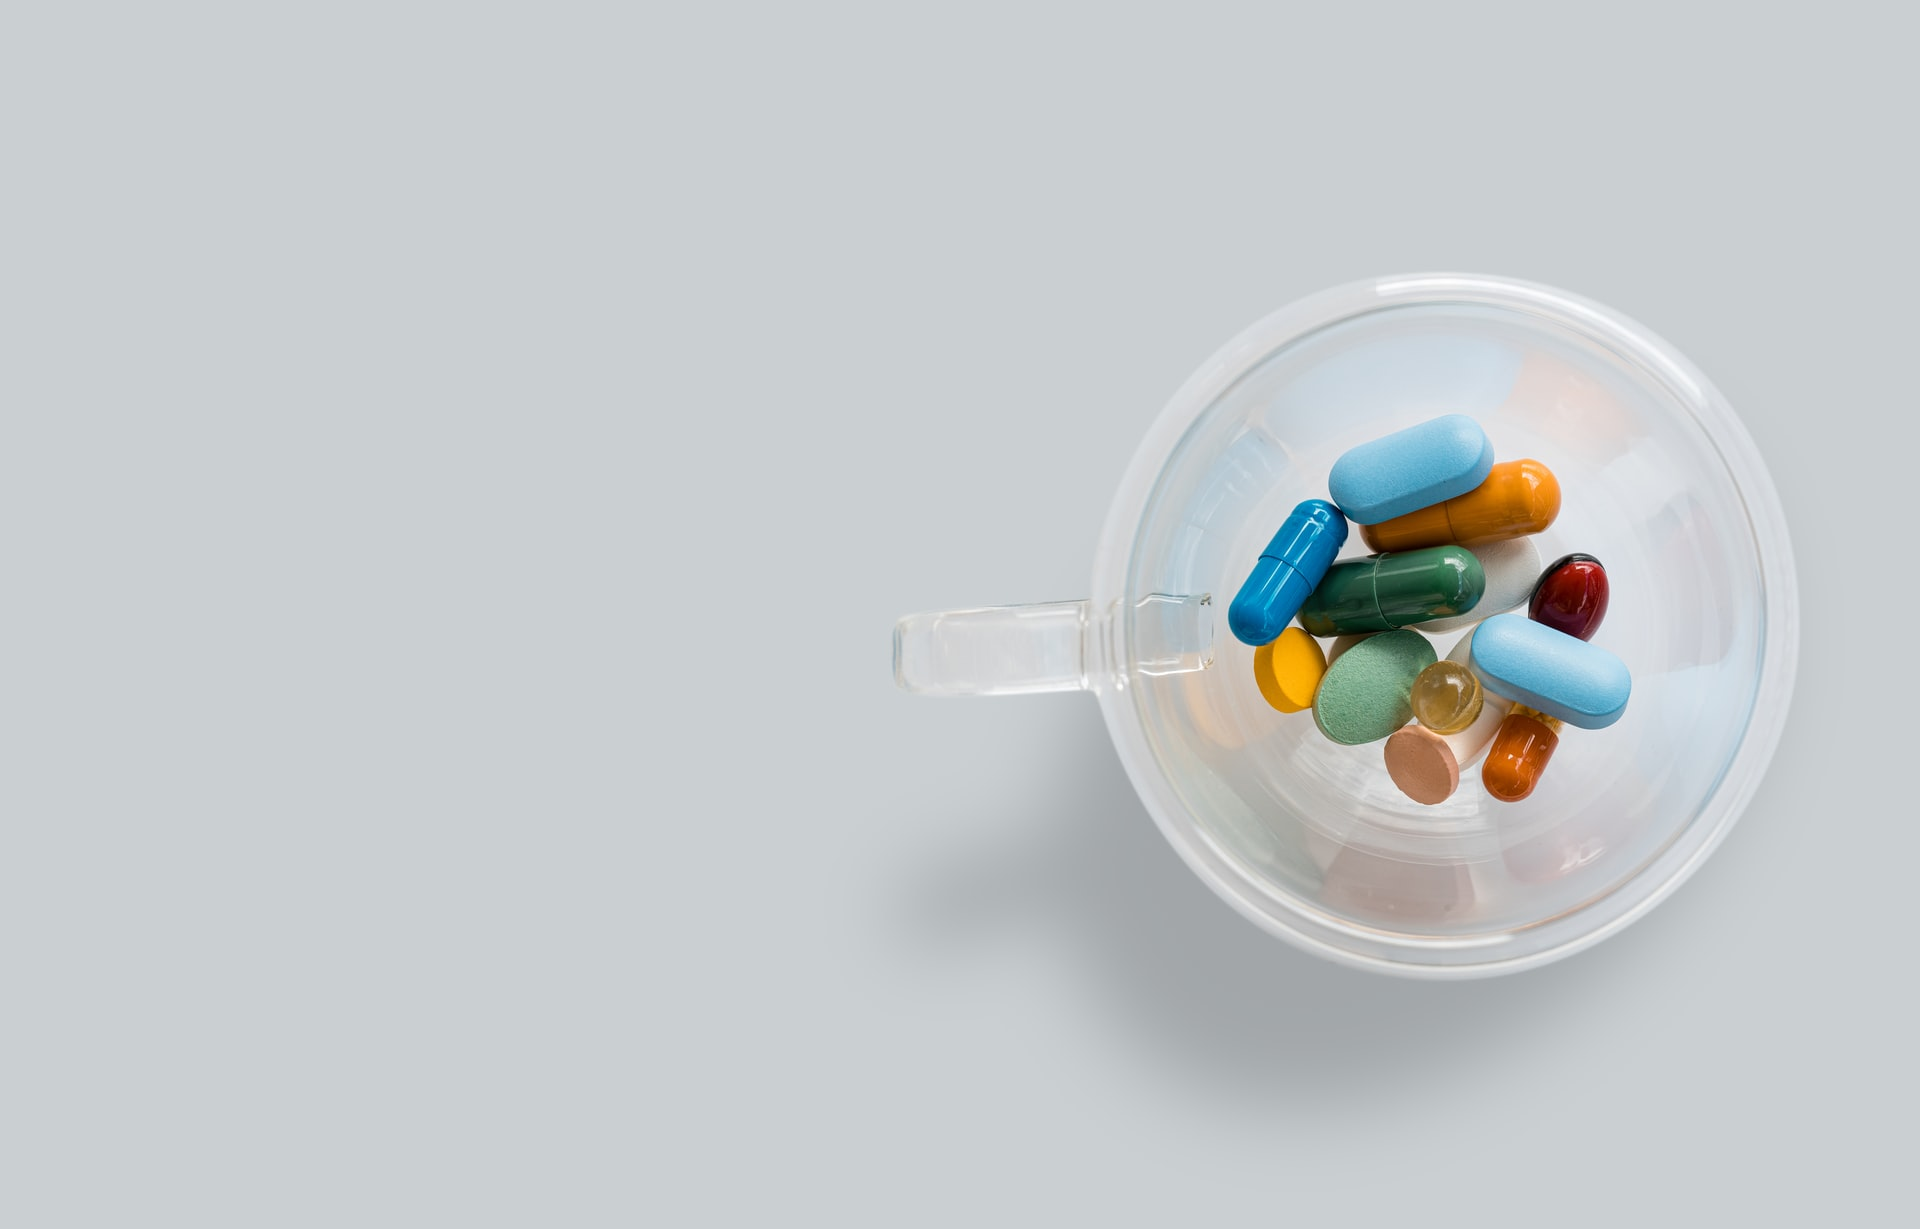 Image from Unsplash of multiple colored pills